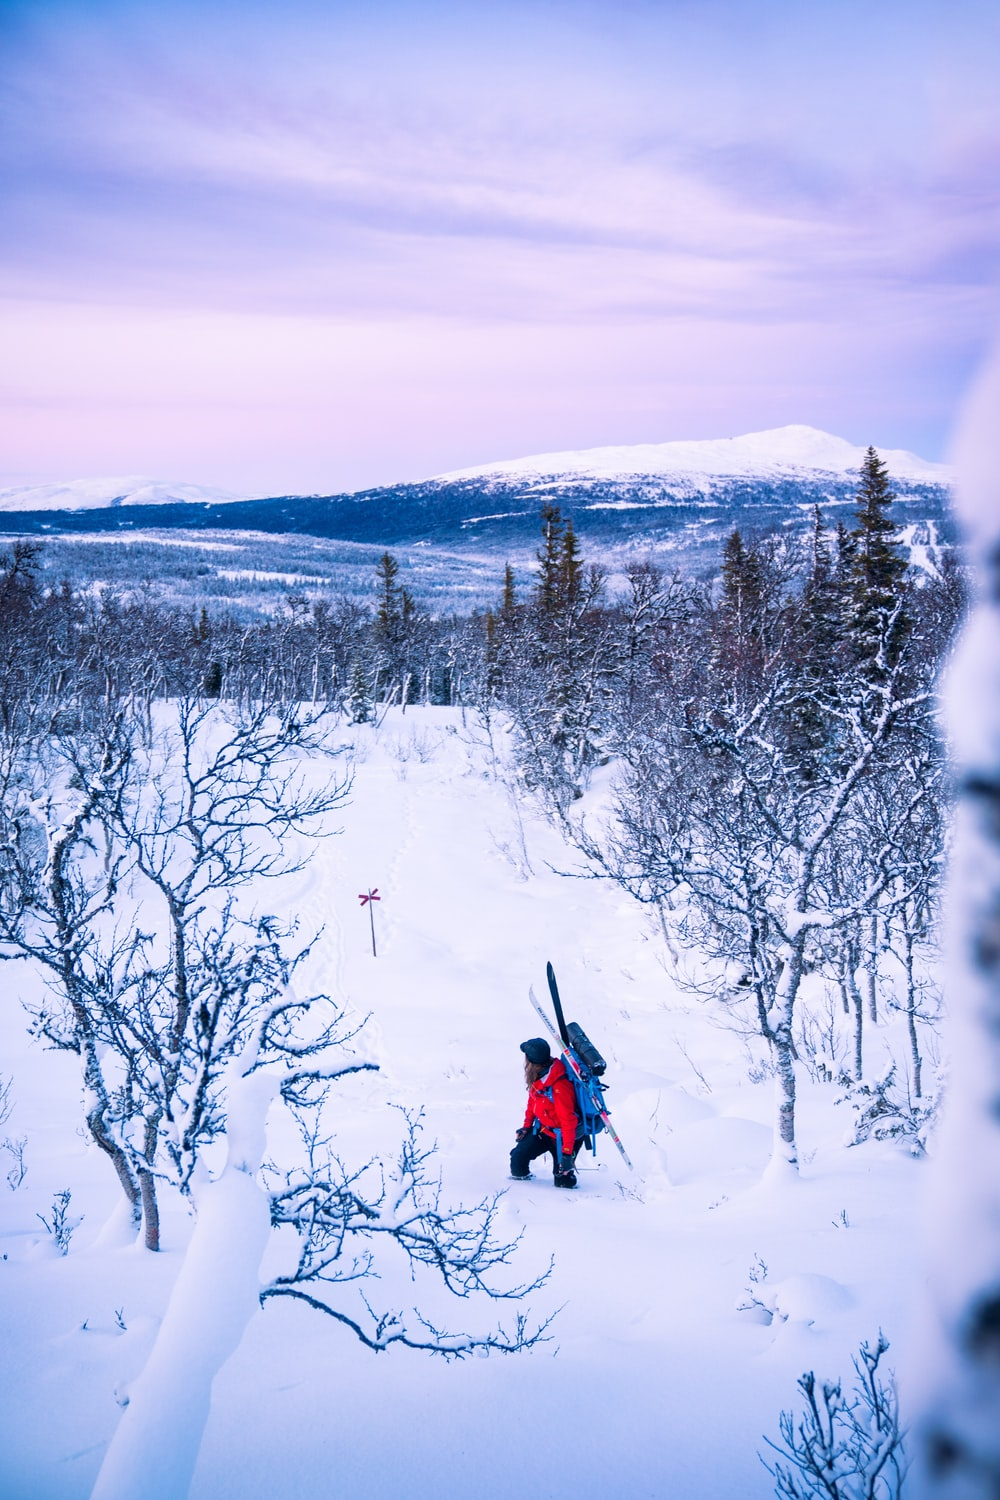 person in red jacket and black pants riding red snow sled on snow covered ground during